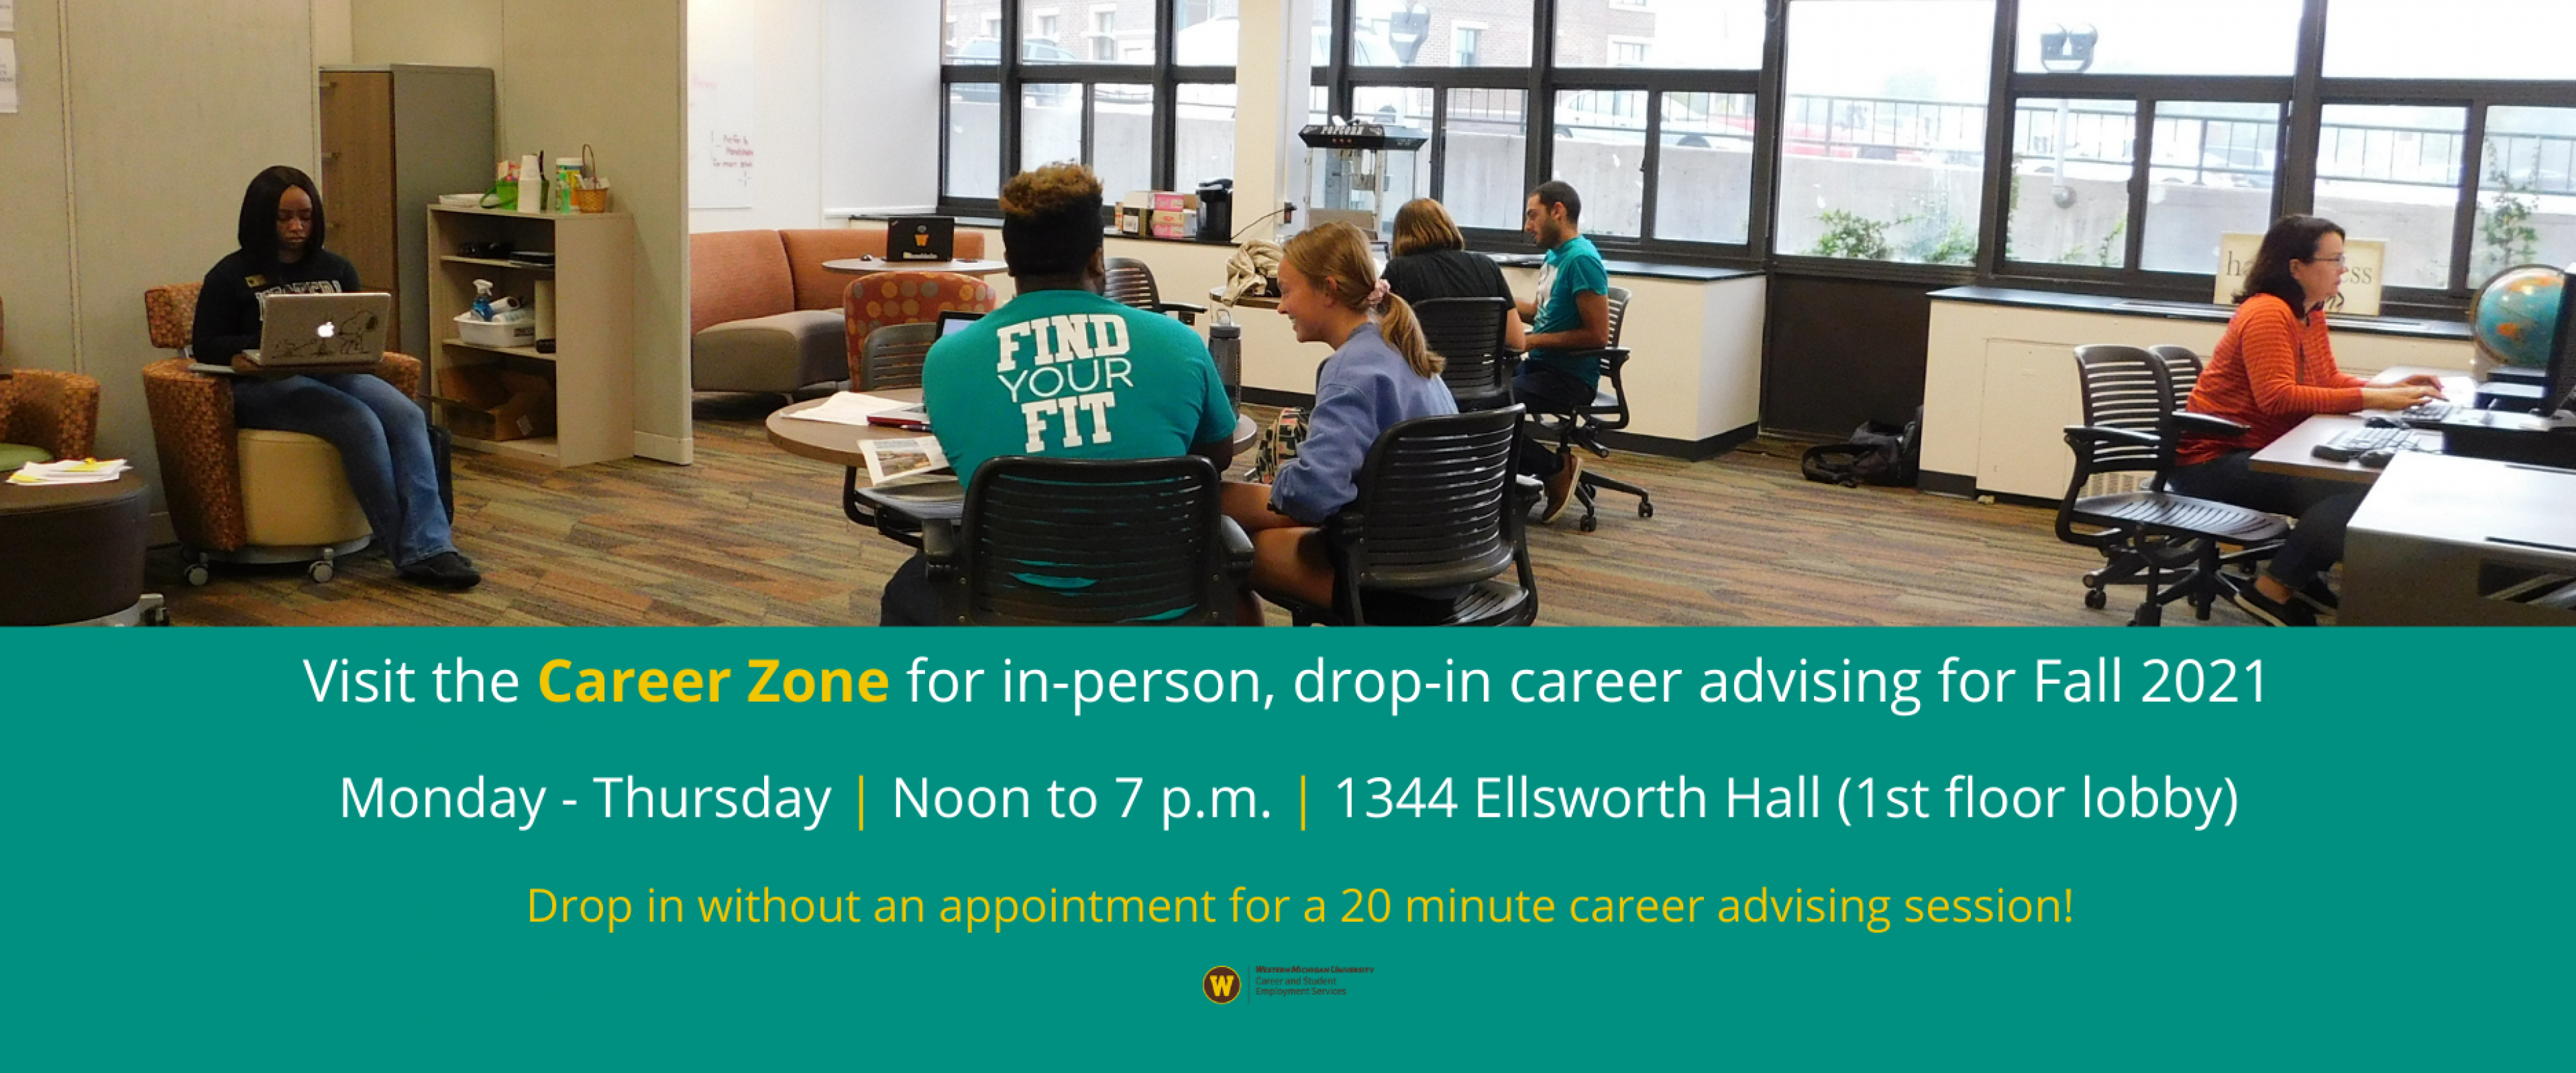 Visit the Career Zone for in-person, drop-in career advising for Fall 2021. Monday through Thursday, noon to 7 p.m., 1344 Ellsworth Hall (1st floor lobby). Drop in without an appointment for a 20 minute career advising session!